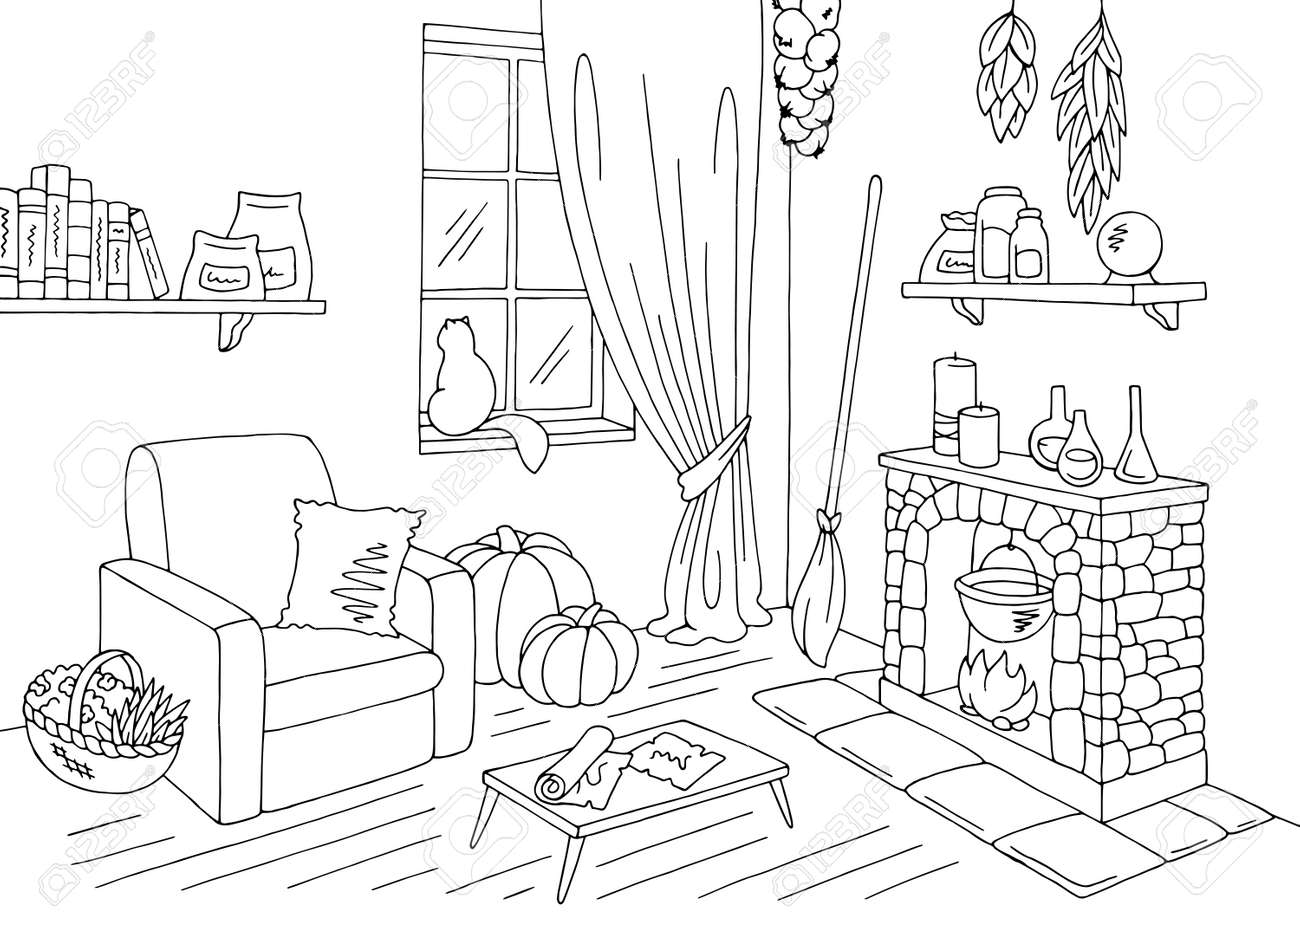 Witch Living Room Graphic Black White Home Interior Sketch